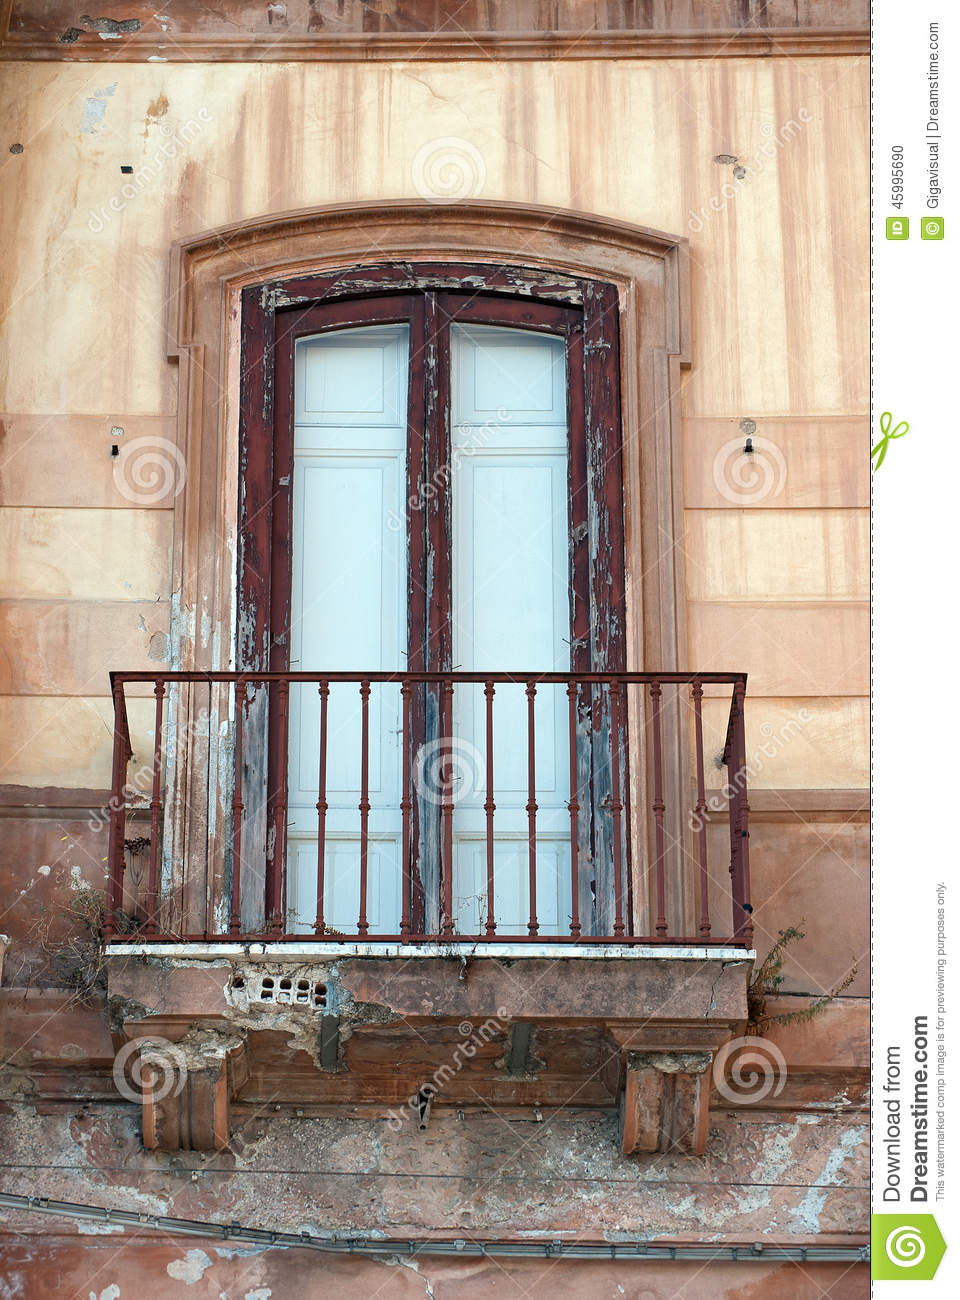 Old italian balcony stock photo image 45995690 for Italian balcony